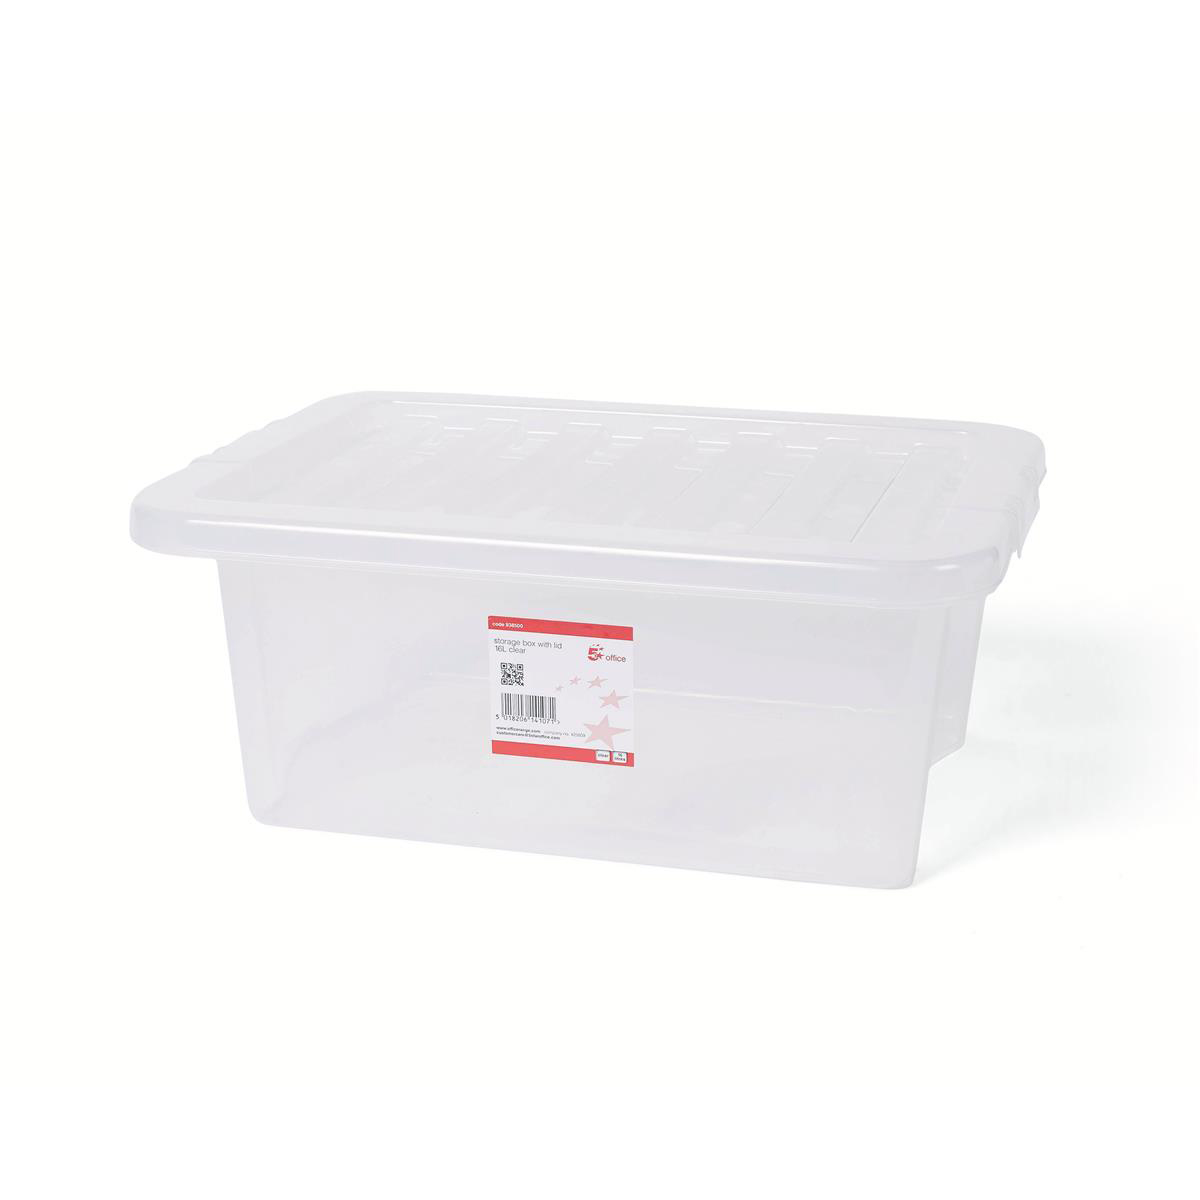 Tool Boxes 5 Star Office Storage Box Plastic with Lid Stackable 16 Litre Clear